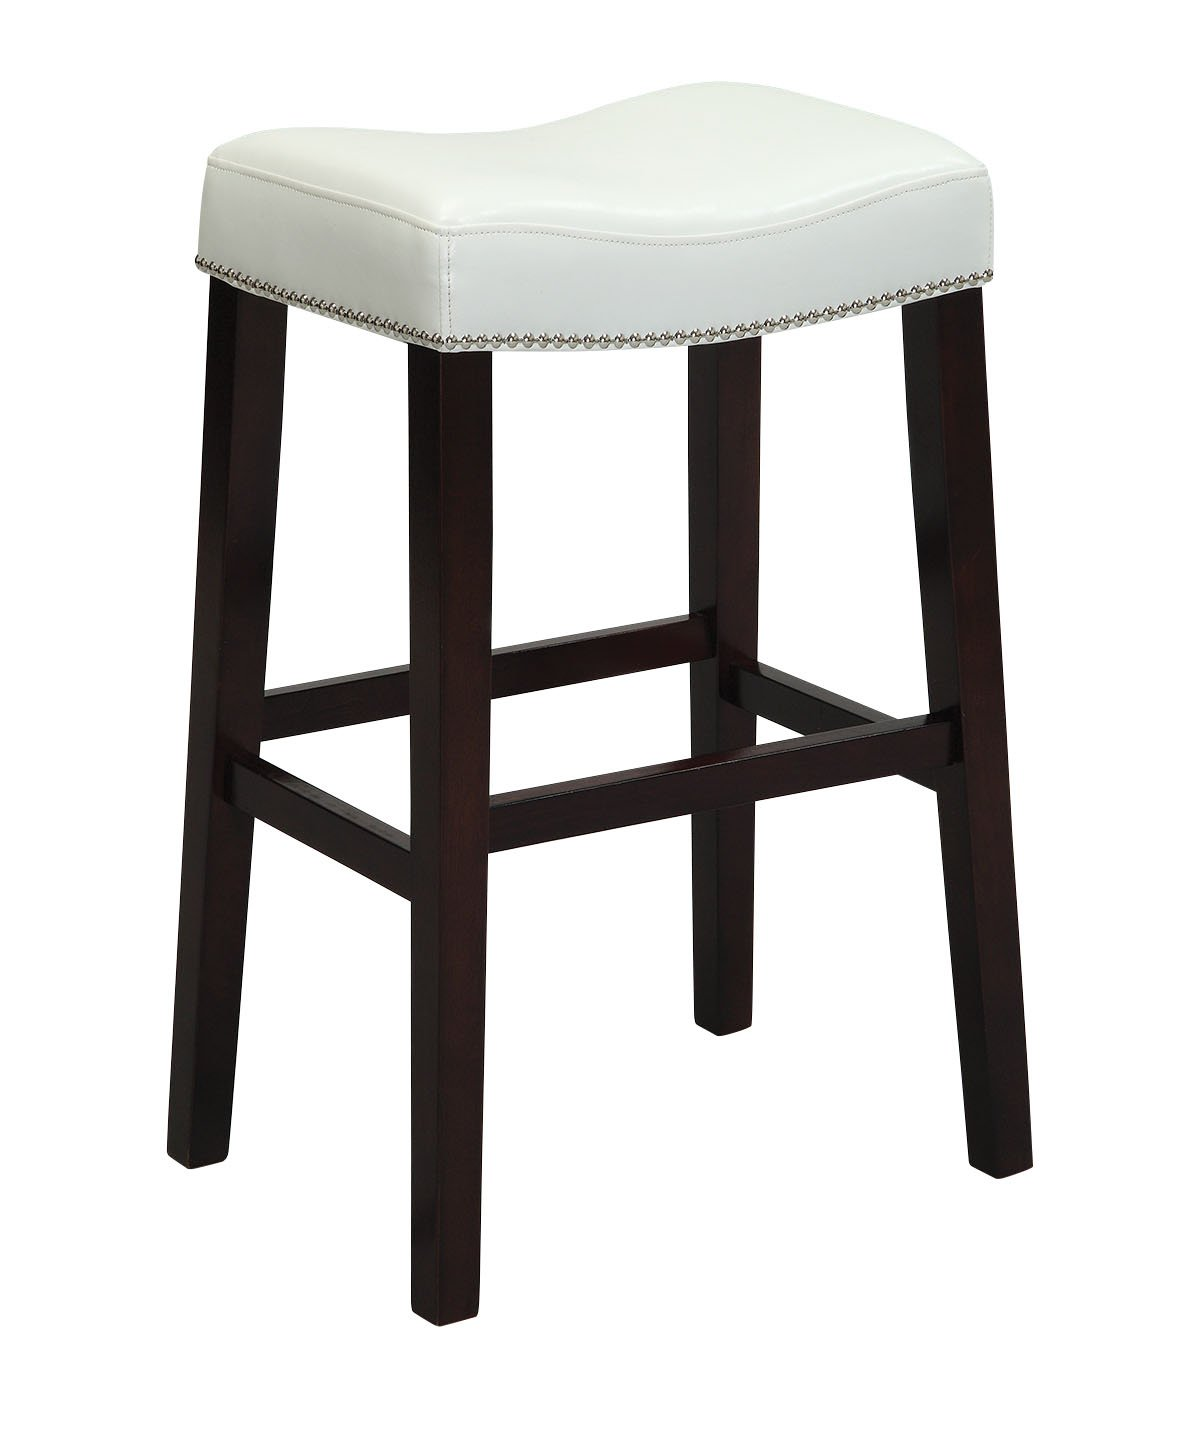 Amazon com acme lewis counter height stool set of 2 white pu and espresso kitchen dining